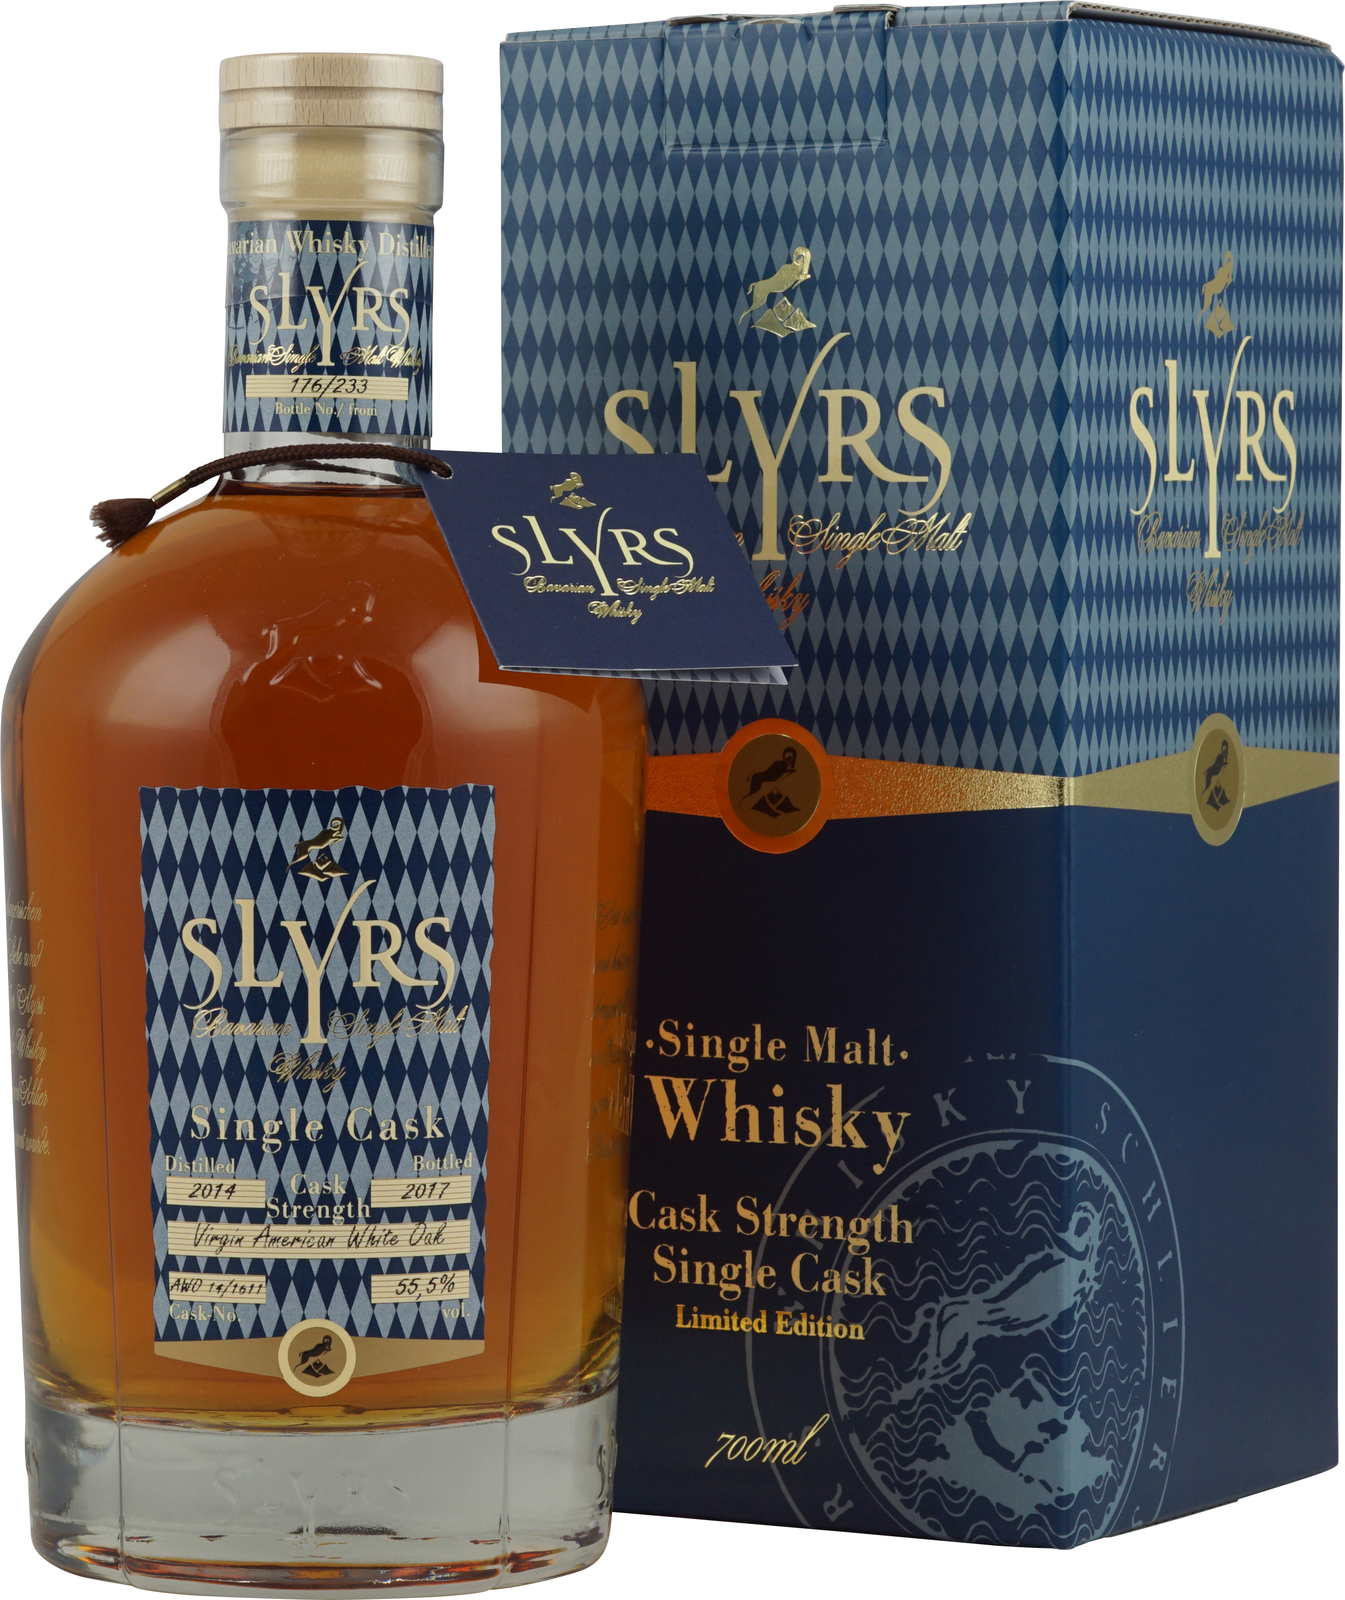 Slyrs bavarian single malt fassstärke